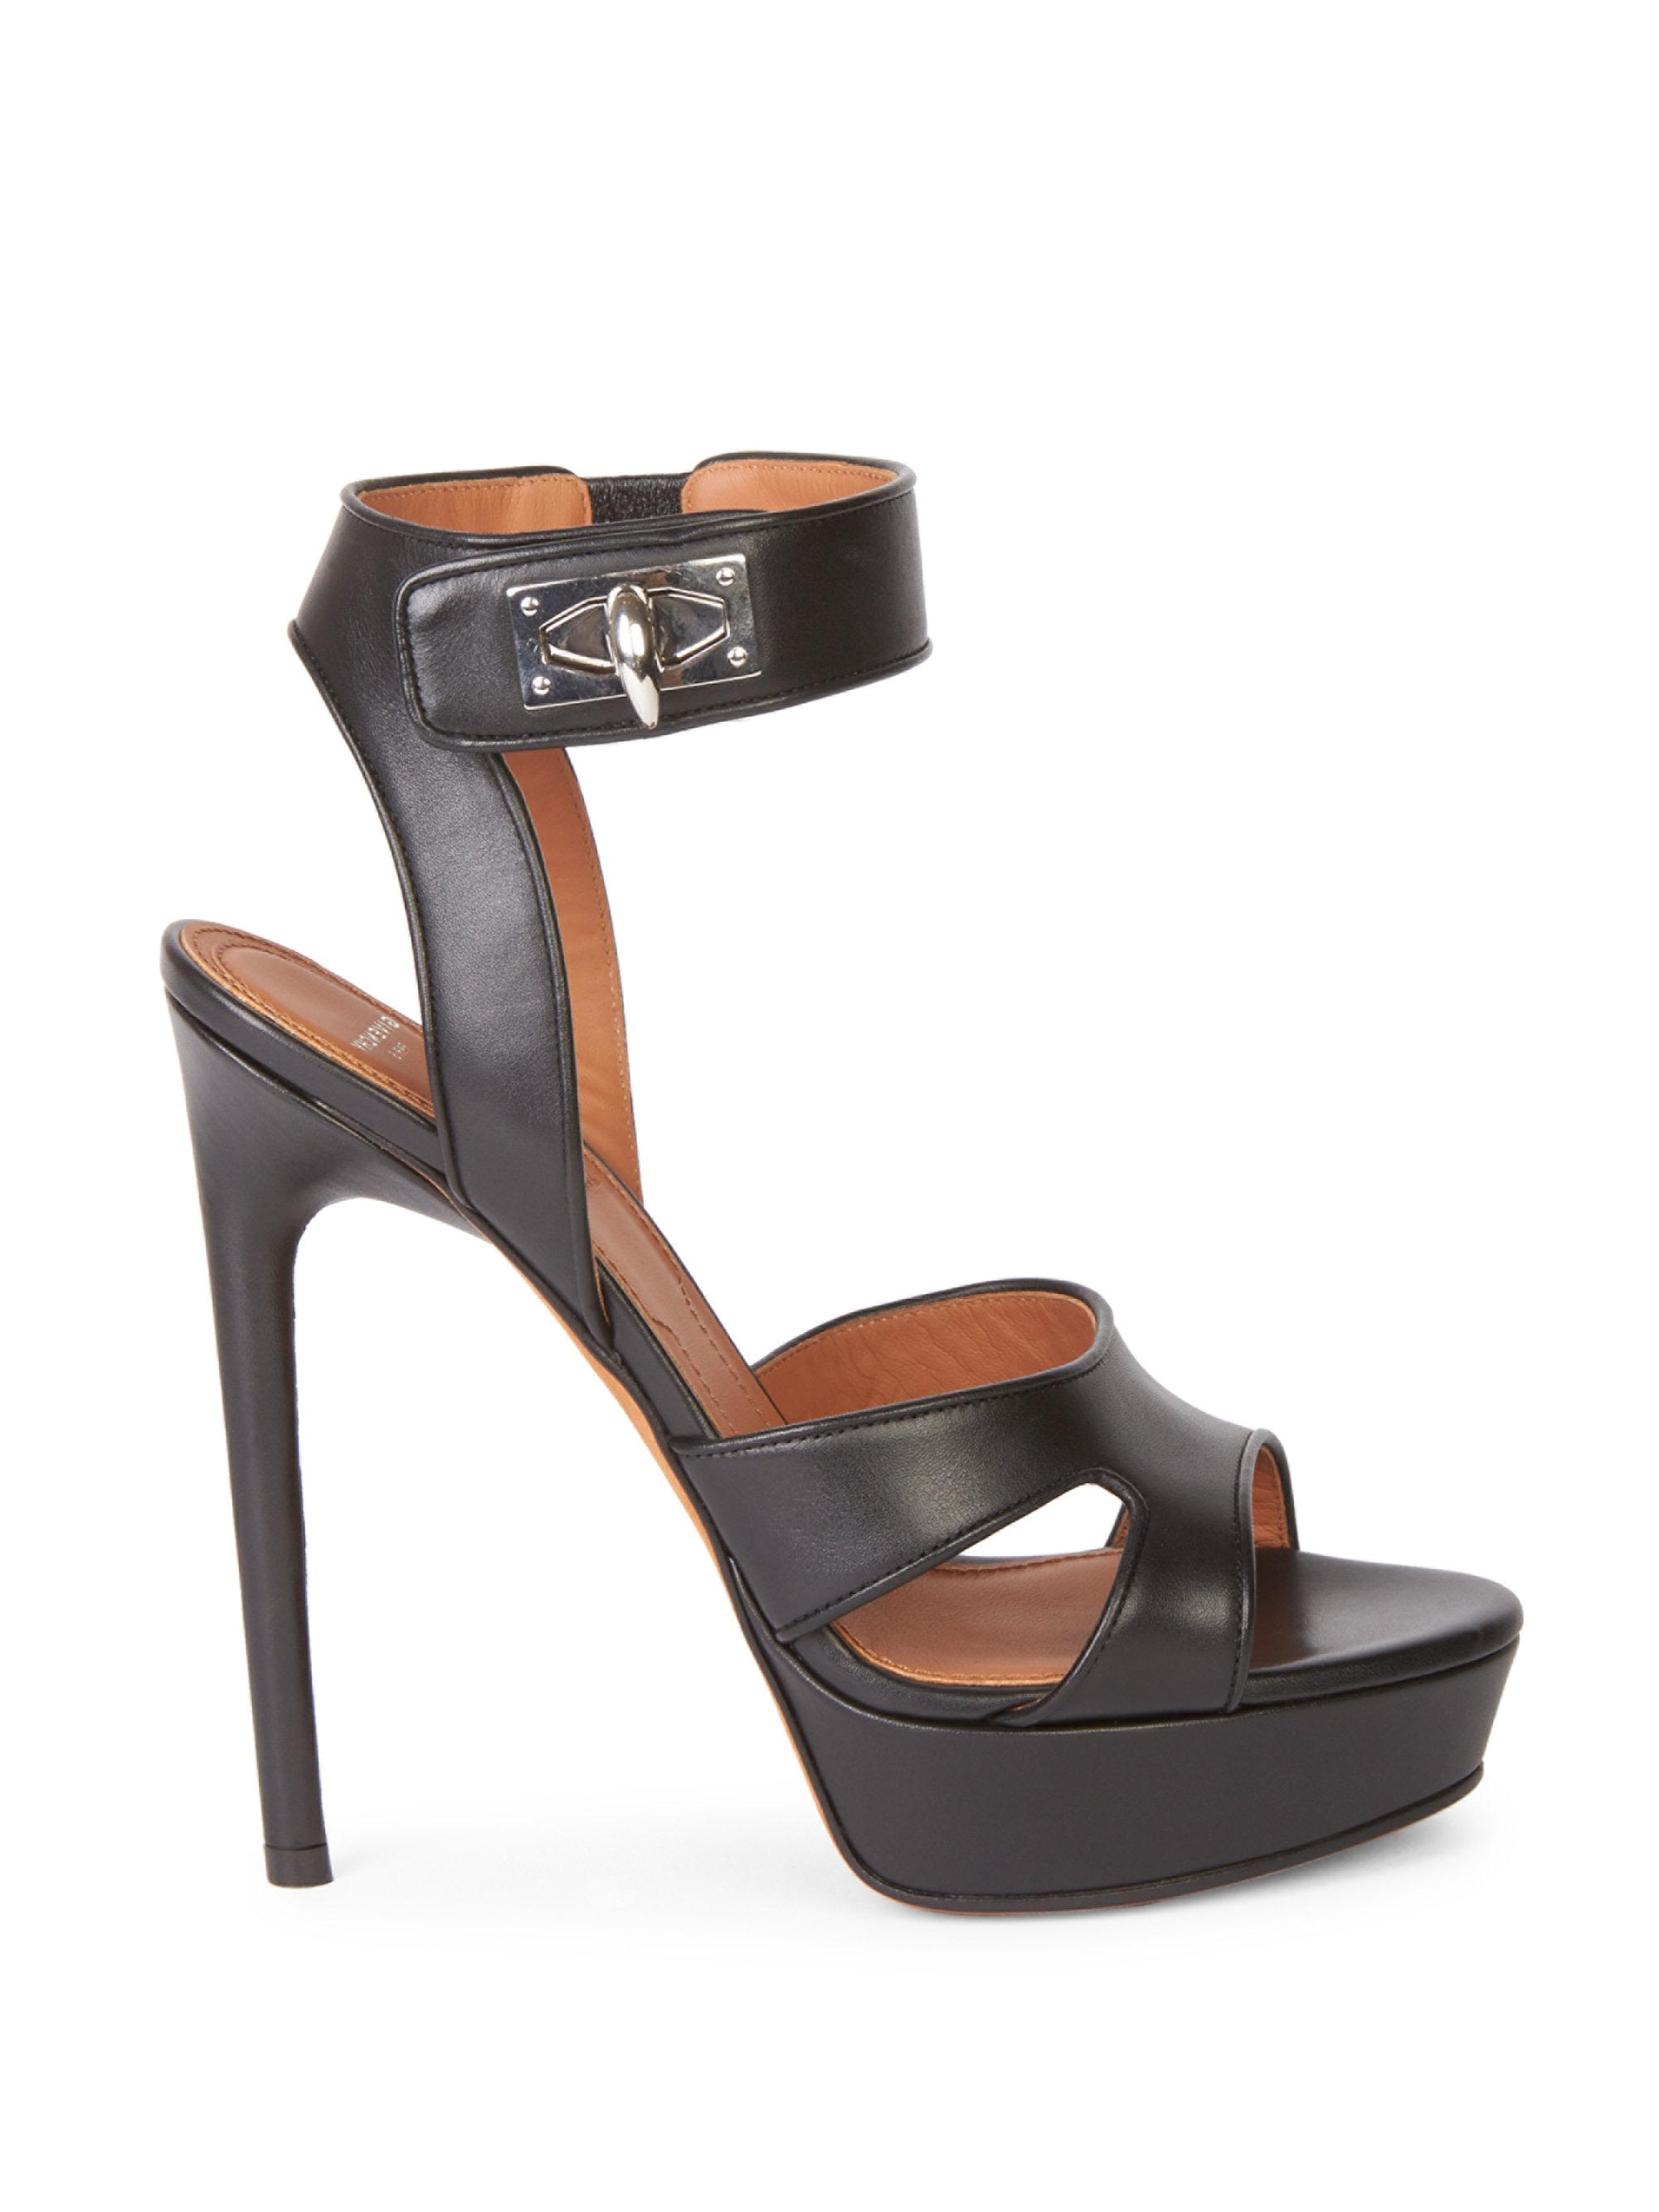 Lyst - Givenchy Turnlock Ankle-strap Sandals in Black